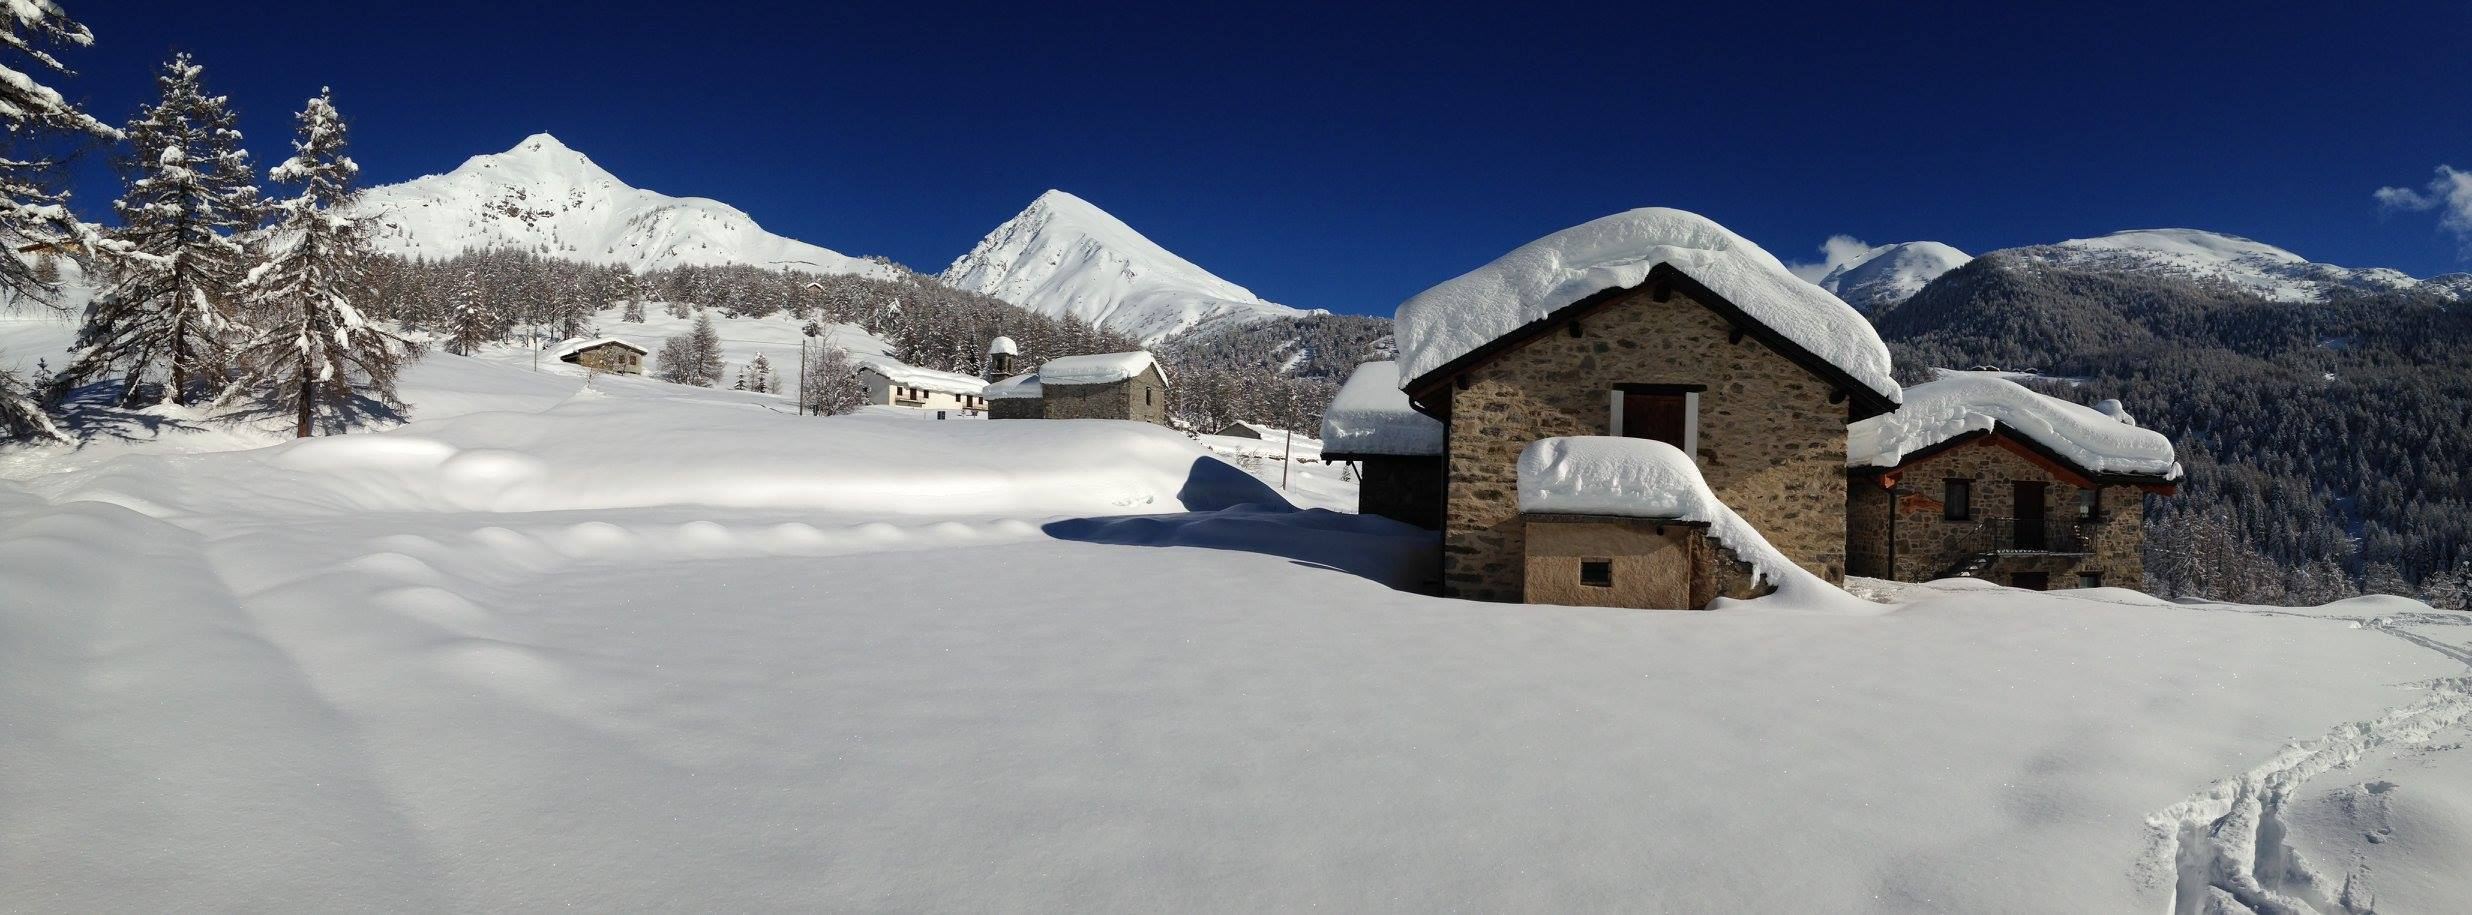 mortirolo - neve in valle camonica blog